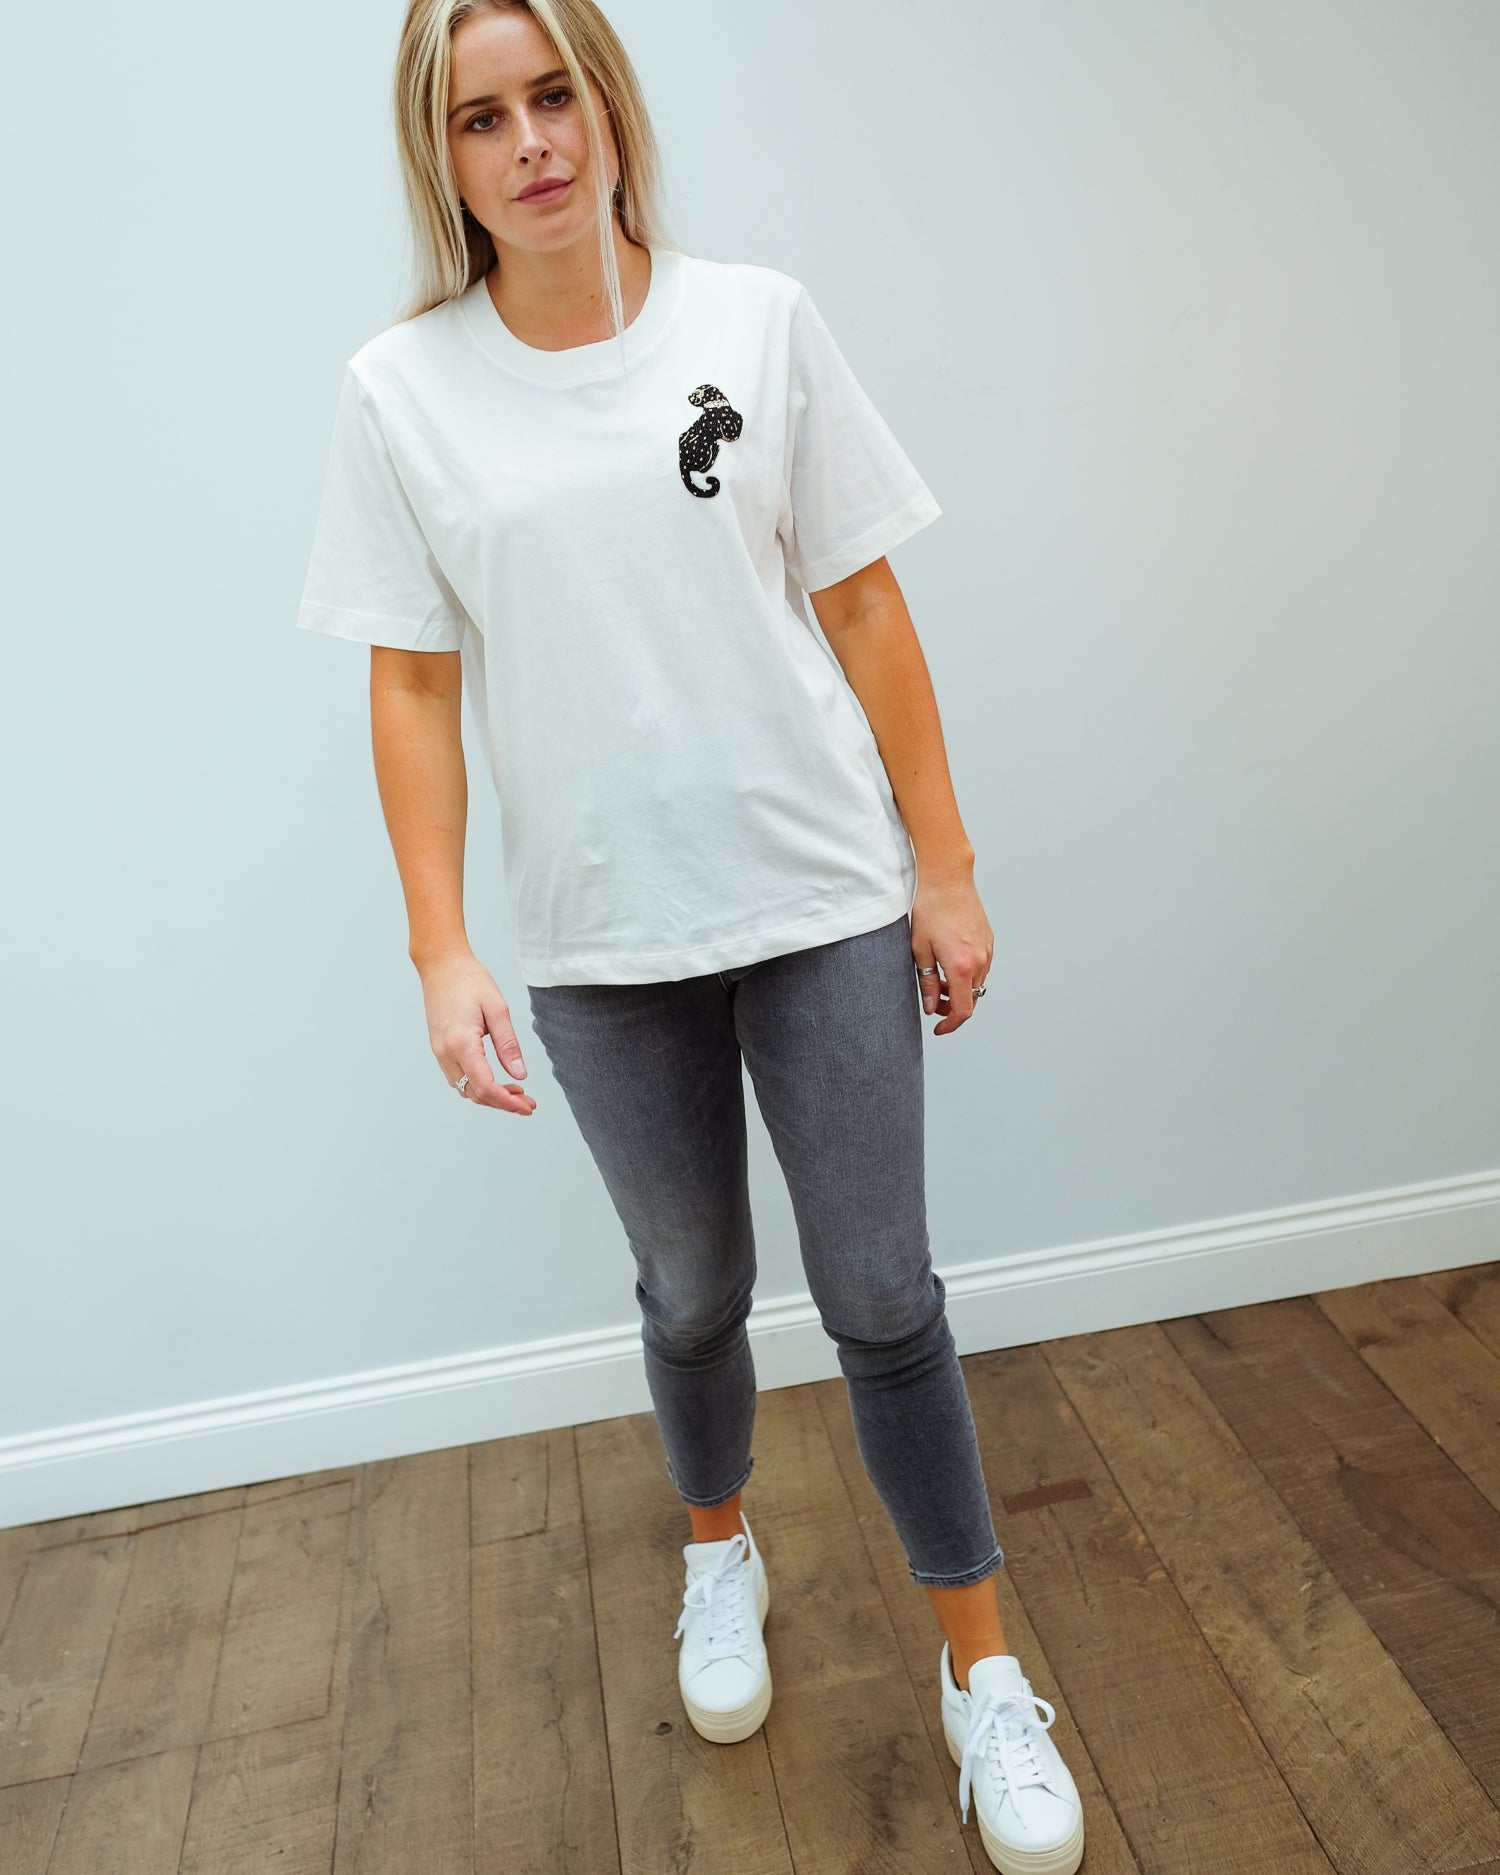 EA Wanthera beads tee in white